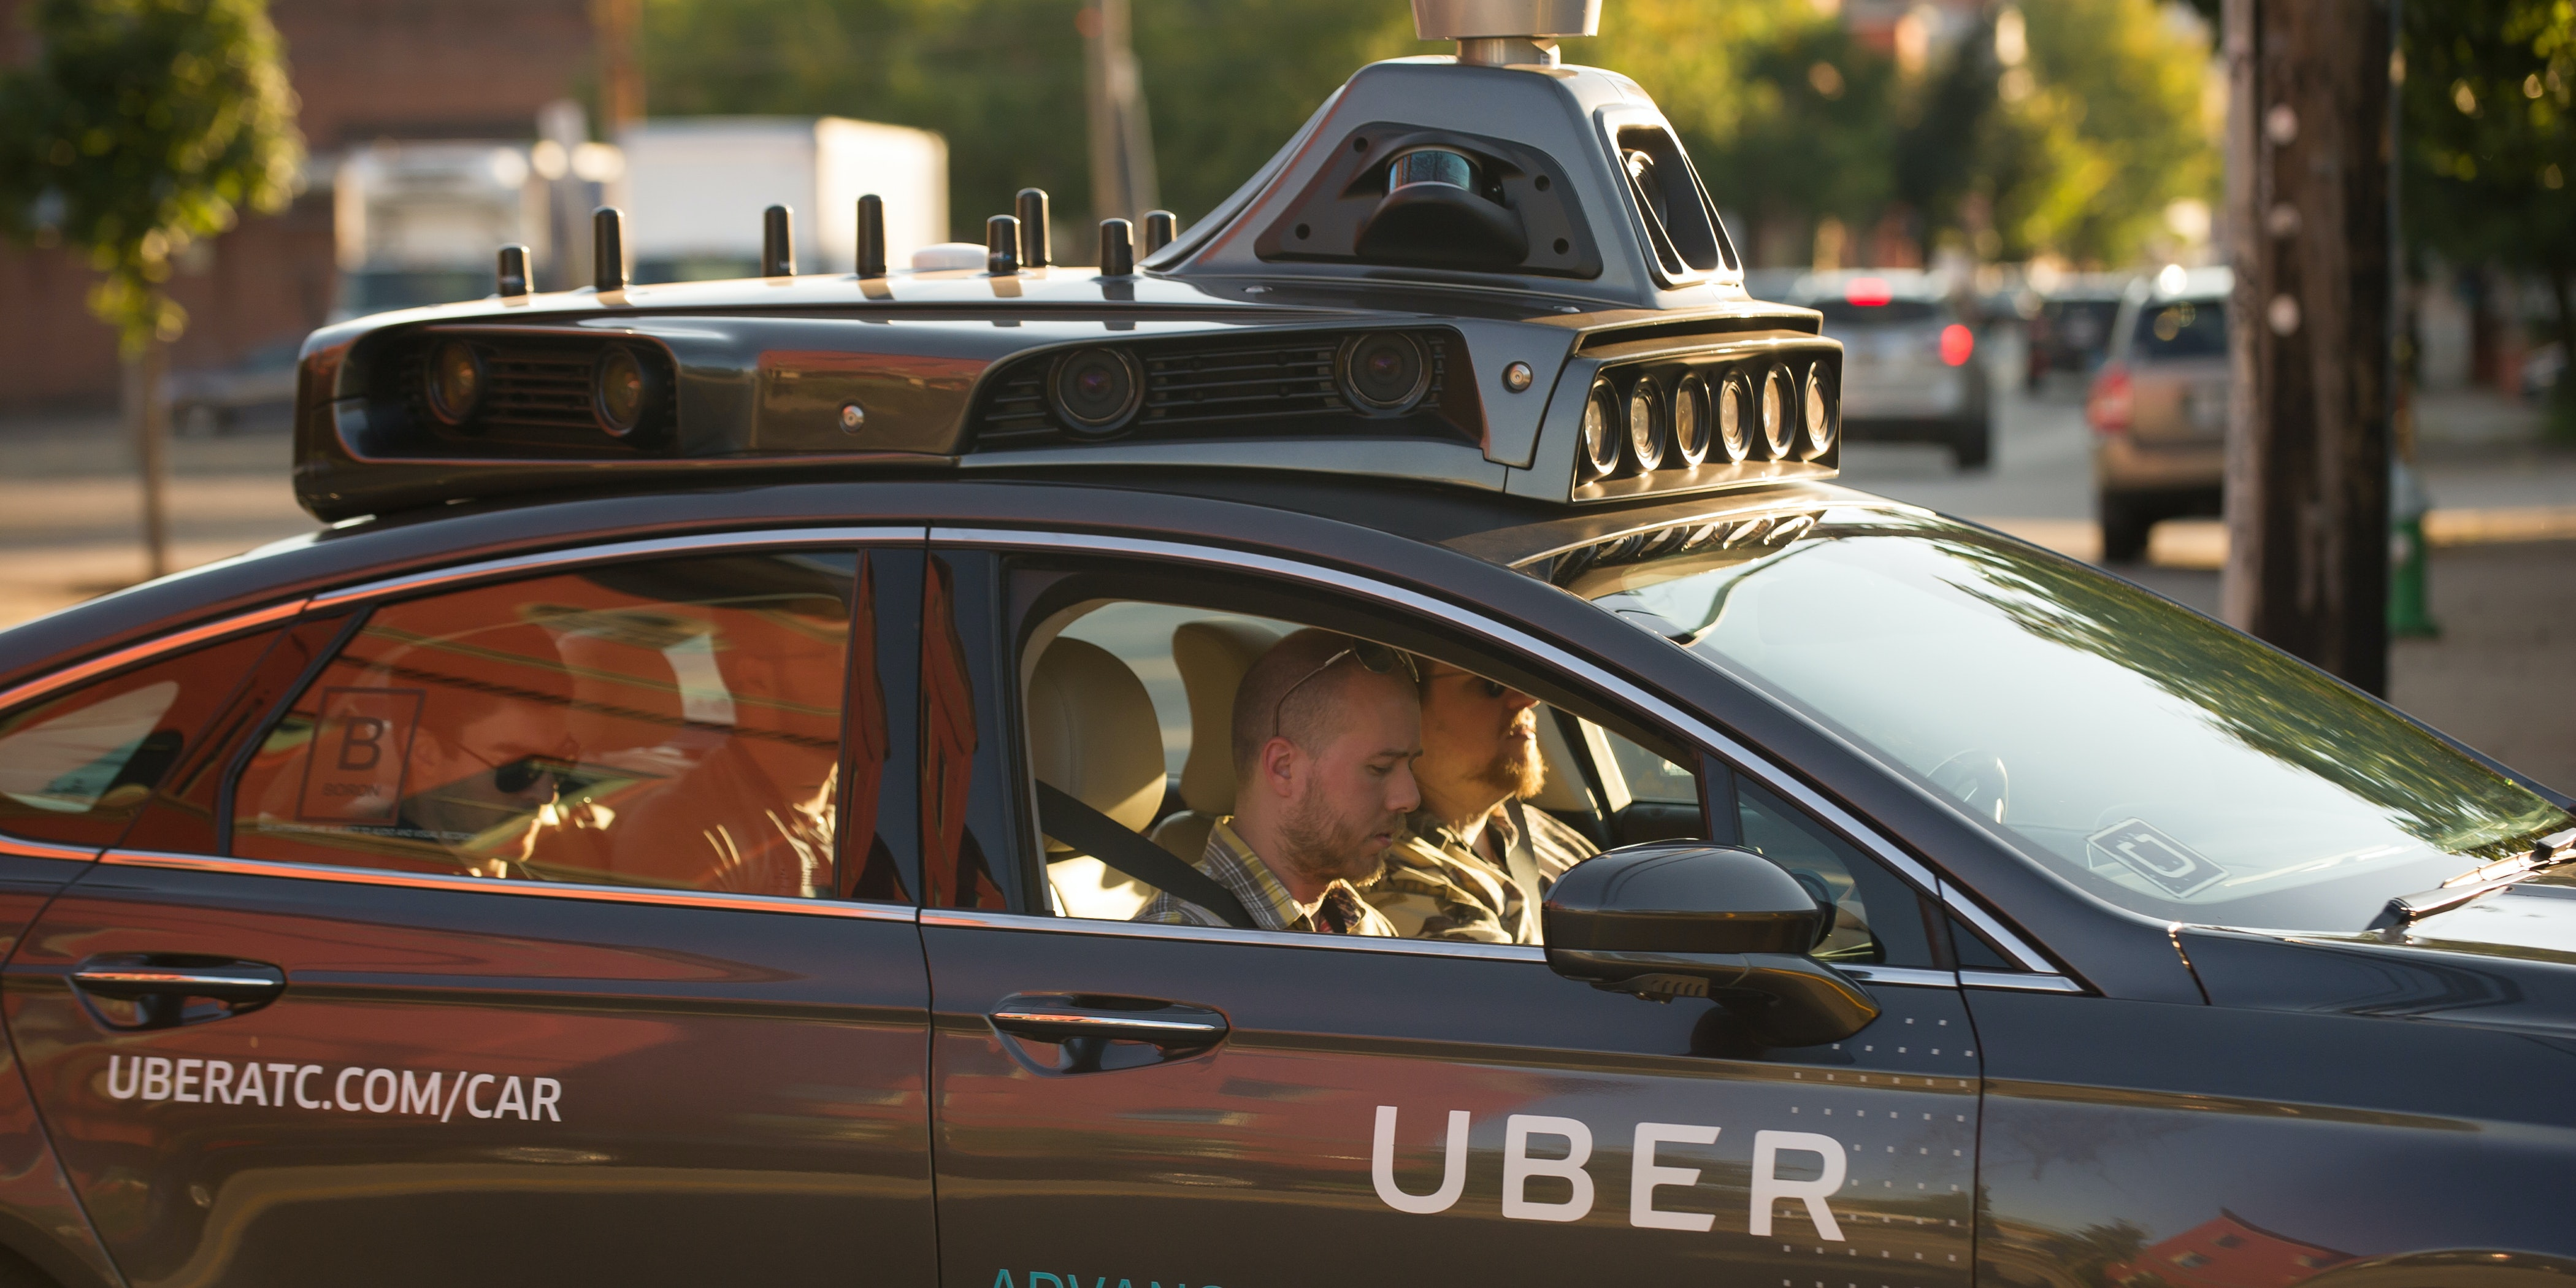 PITTSBURGH, PA - SEPTEMBER 22: An Uber driverless Ford Fusion drives down Smallman Street on September, 22, 2016 in Pittsburgh, Pennsylvania. Uber has built its Uber Technical Center in Pittsburgh and is developing an autonomous vehicle that it hopes will be able to transport its millions of clients without the need for a driver.